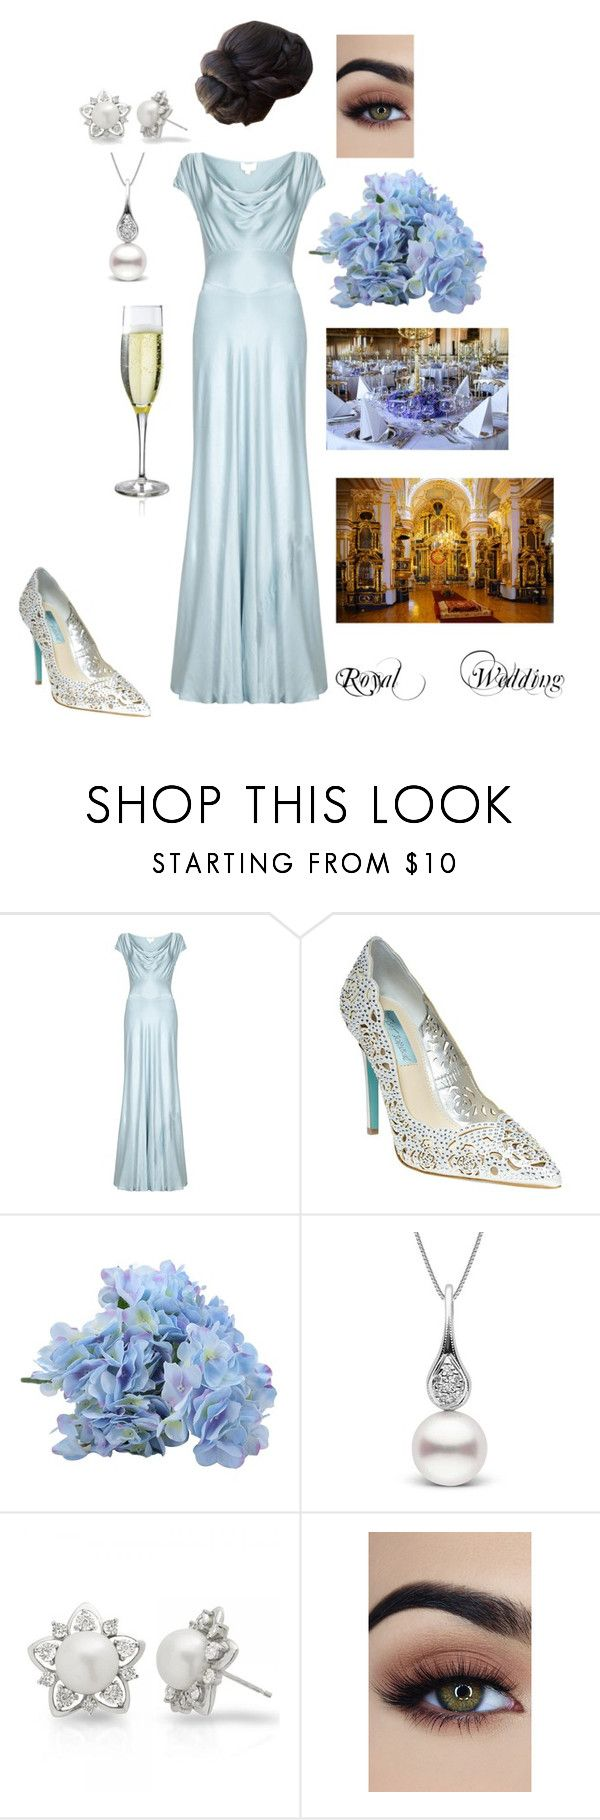 """""""Royal Religious Ceremony & Reception"""" by terrikahan on Polyvore featuring Ghost, Betsey Johnson and Allurez"""